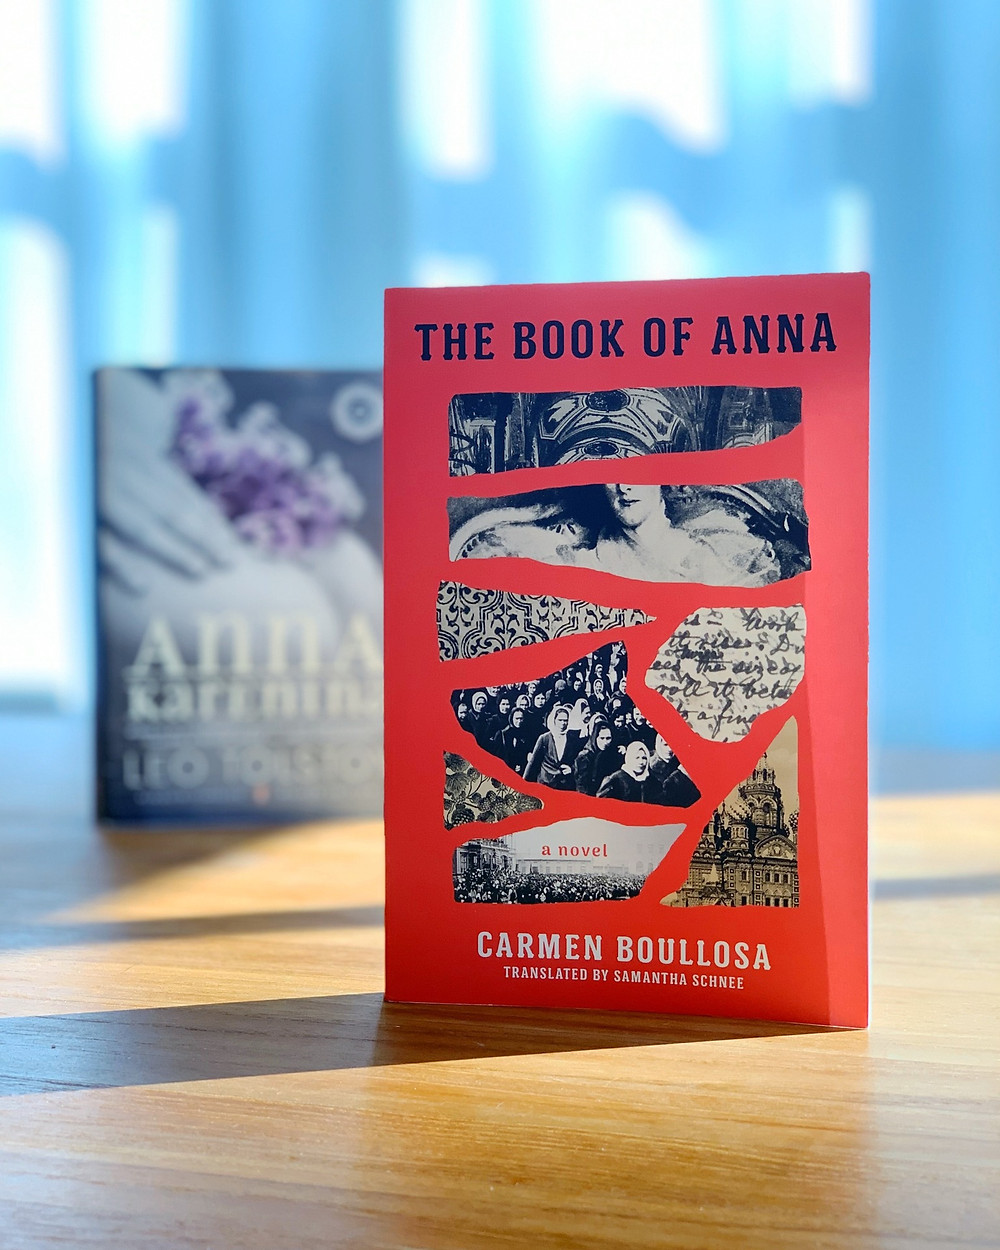 A copy of Anna Karenina and The Book of Anna lie on a table in shadow